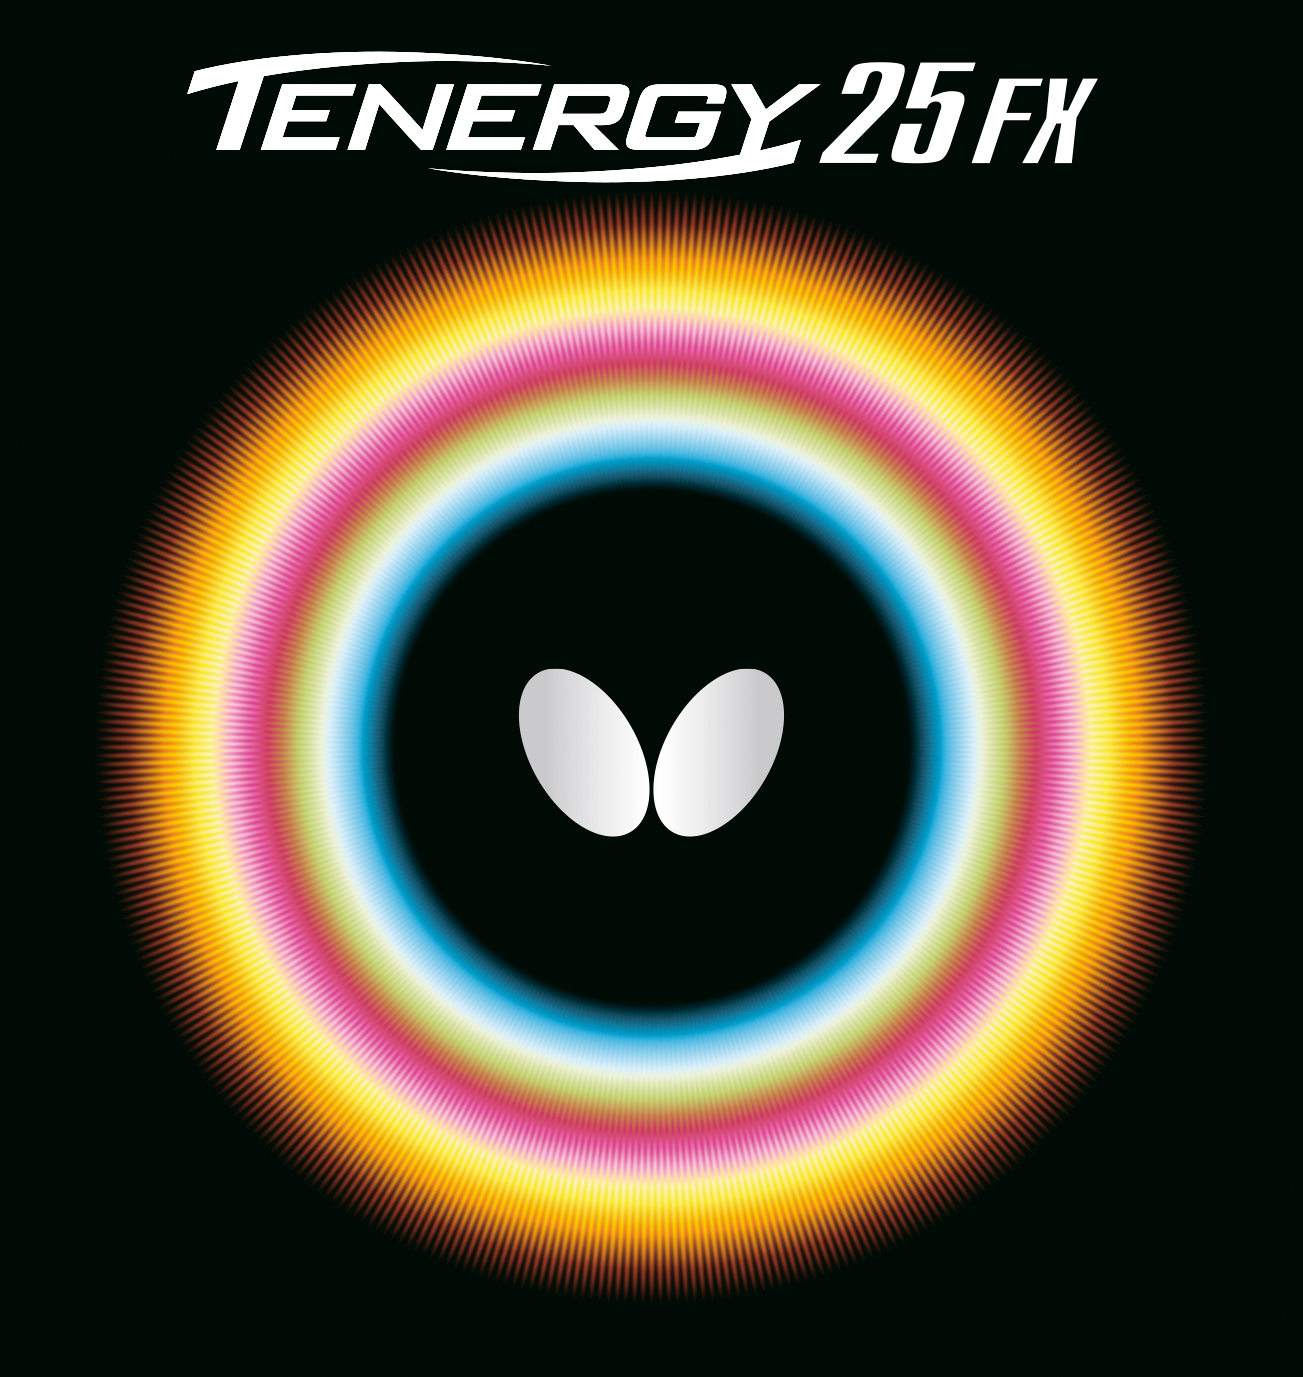 Butterfly-Tenergy 25 FX